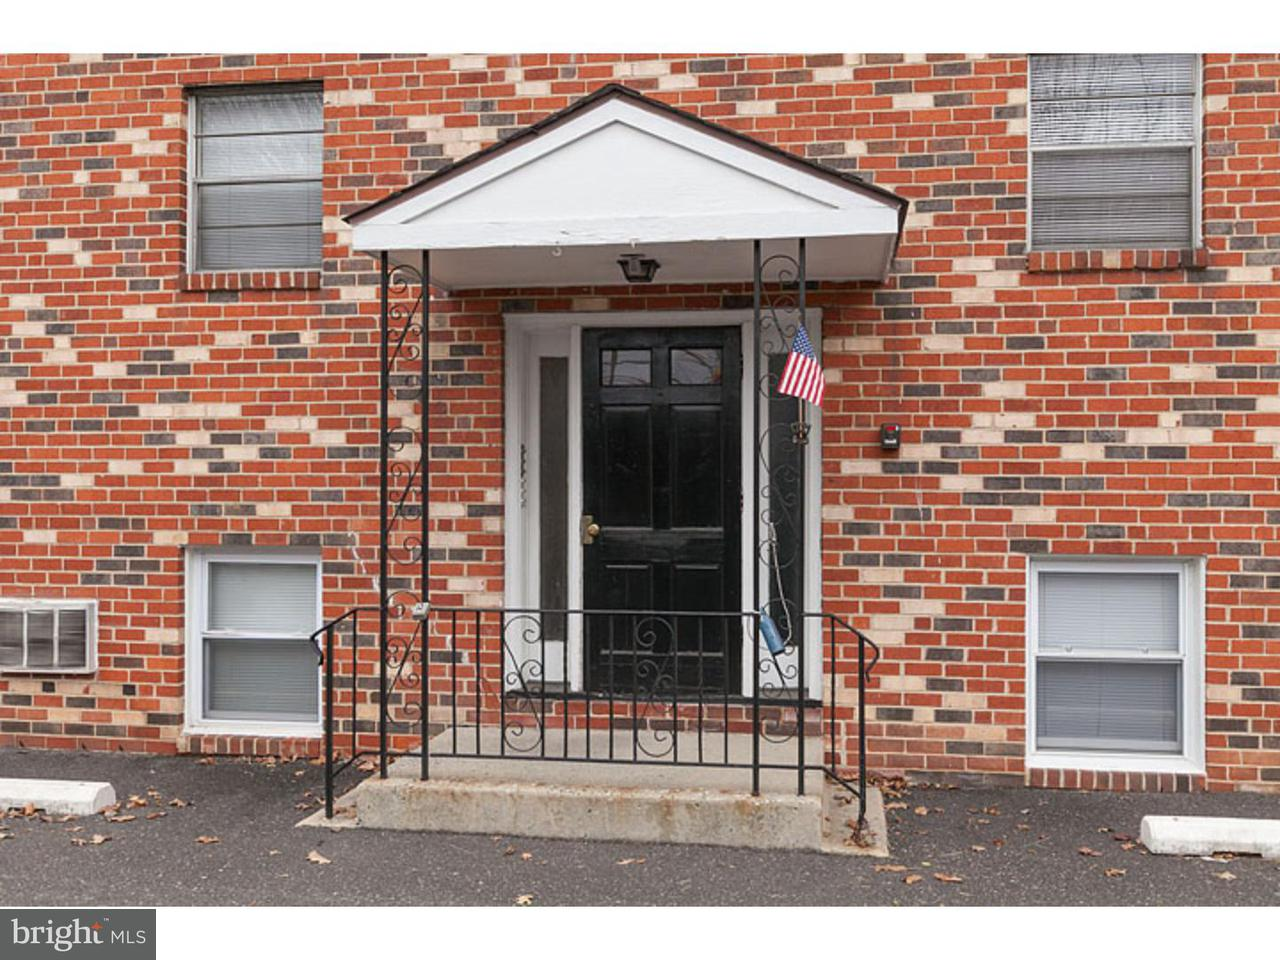 Townhouse for Rent at 740 S WHITE HORSE PIKE #208 Audubon, New Jersey 08106 United States